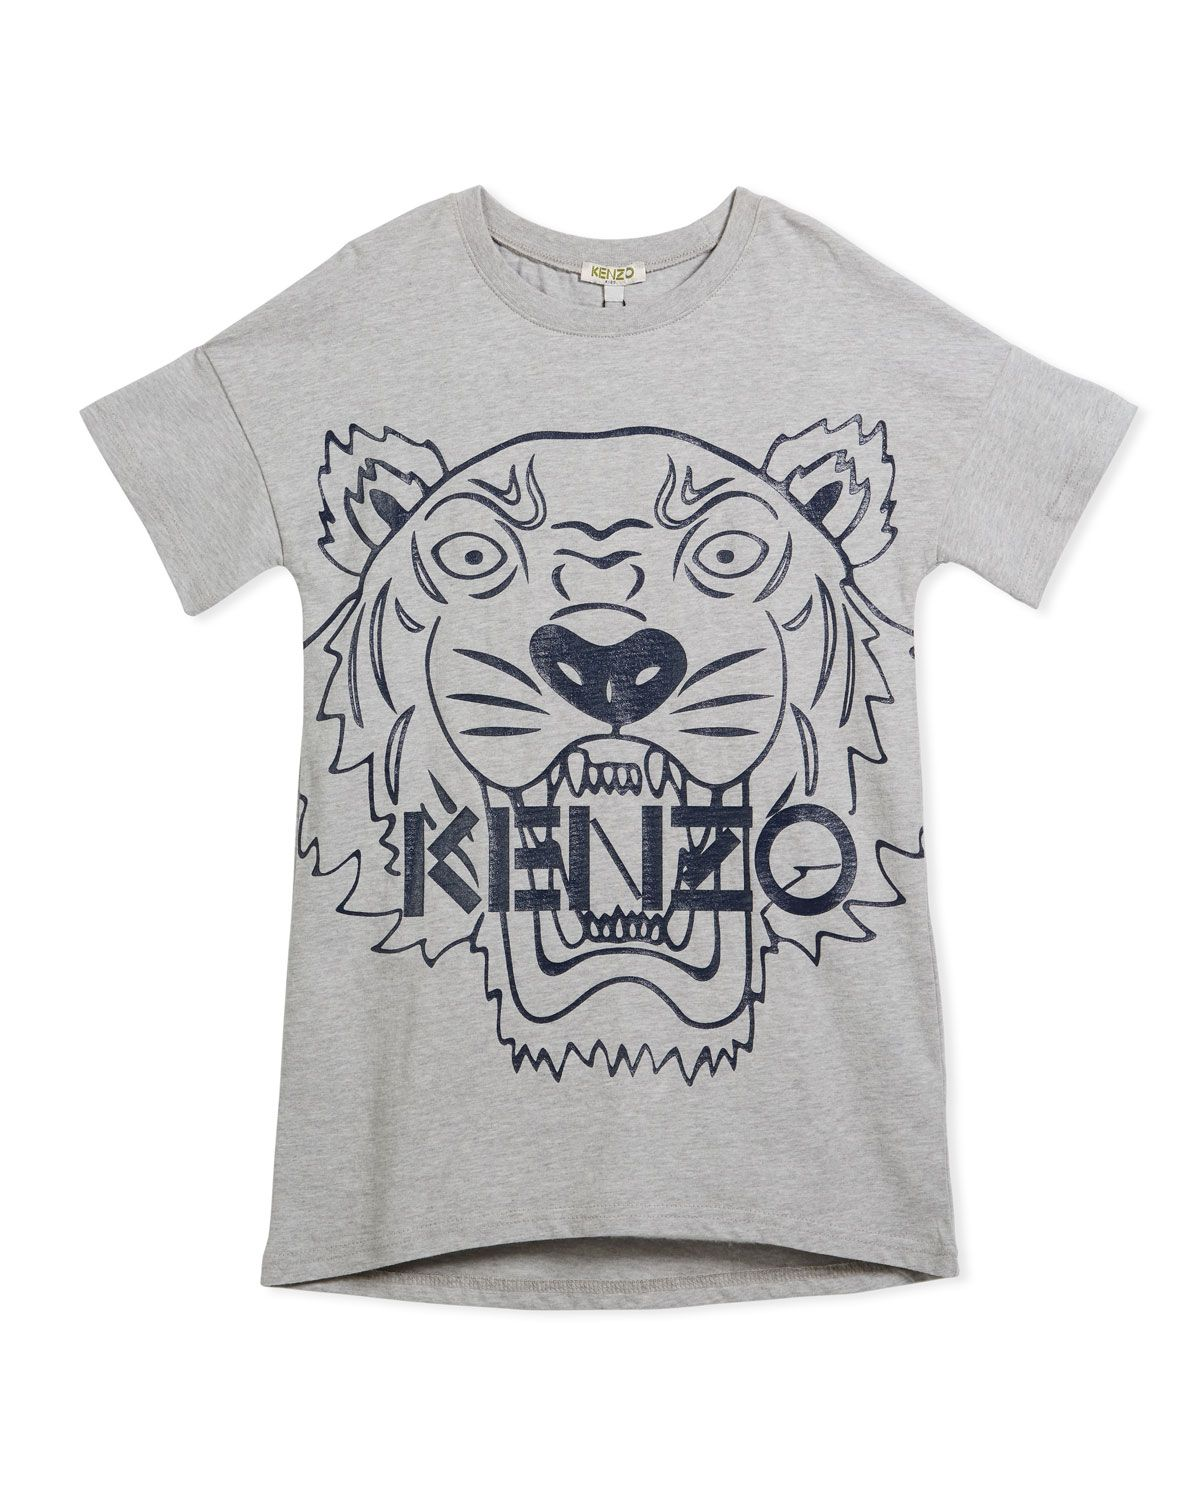 c48822517 KENZO DROP-SHOULDER DRESS W/ OVERSIZED TIGER FACE GRAPHIC, GRAY, SIZE  14-16. #kenzo #cloth #